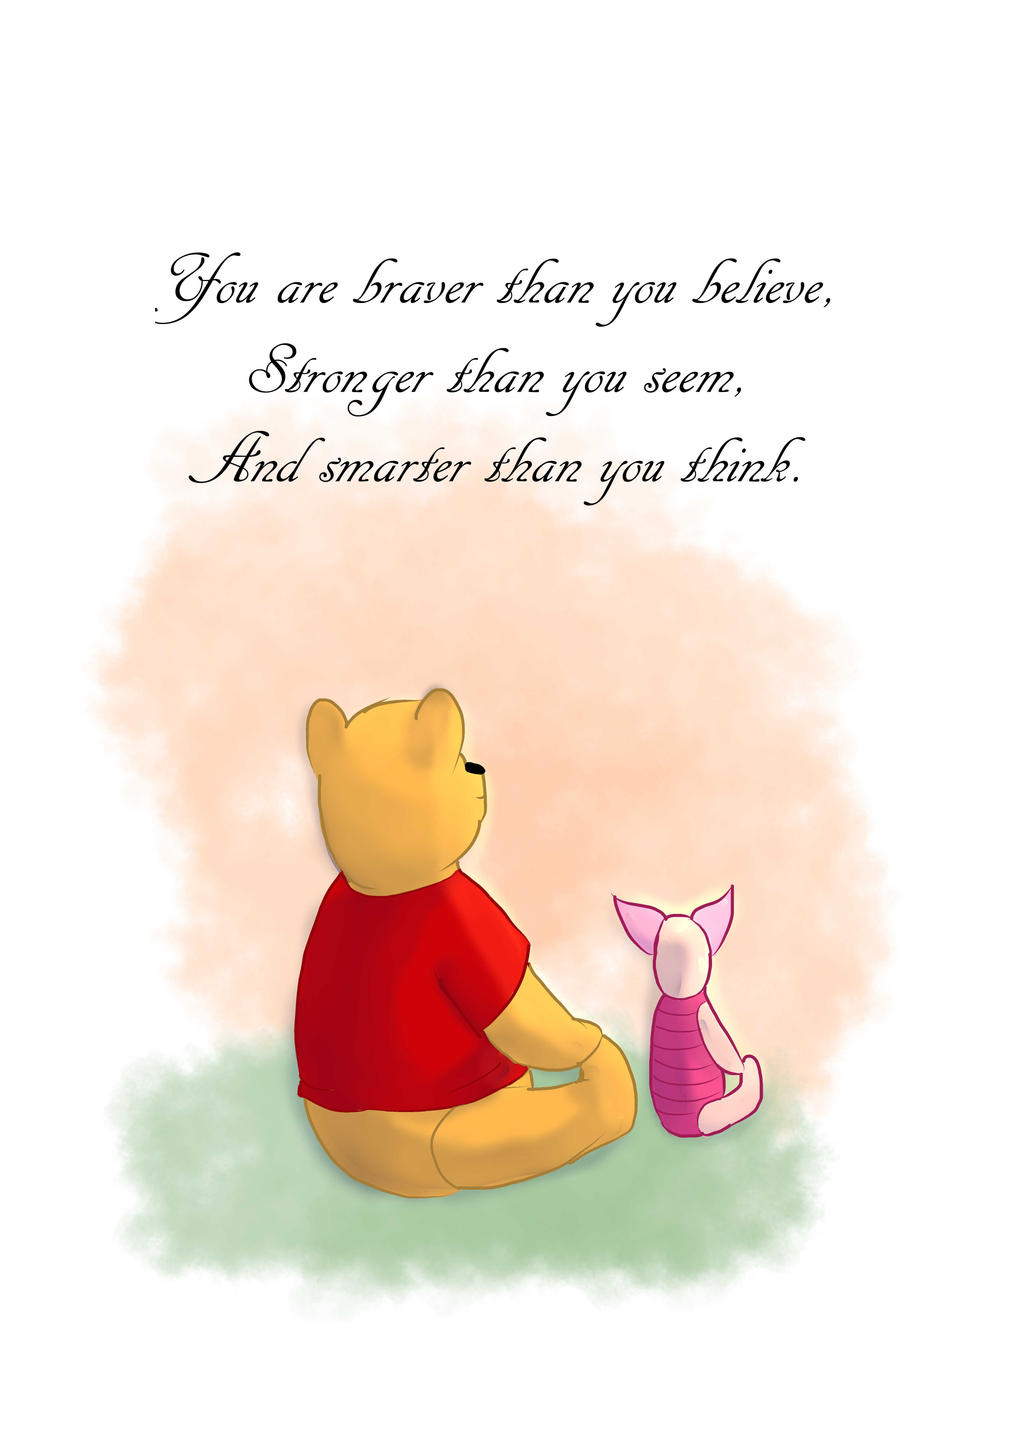 Winnie The Pooh Quotes Youre Braver Than You Believe Archidev